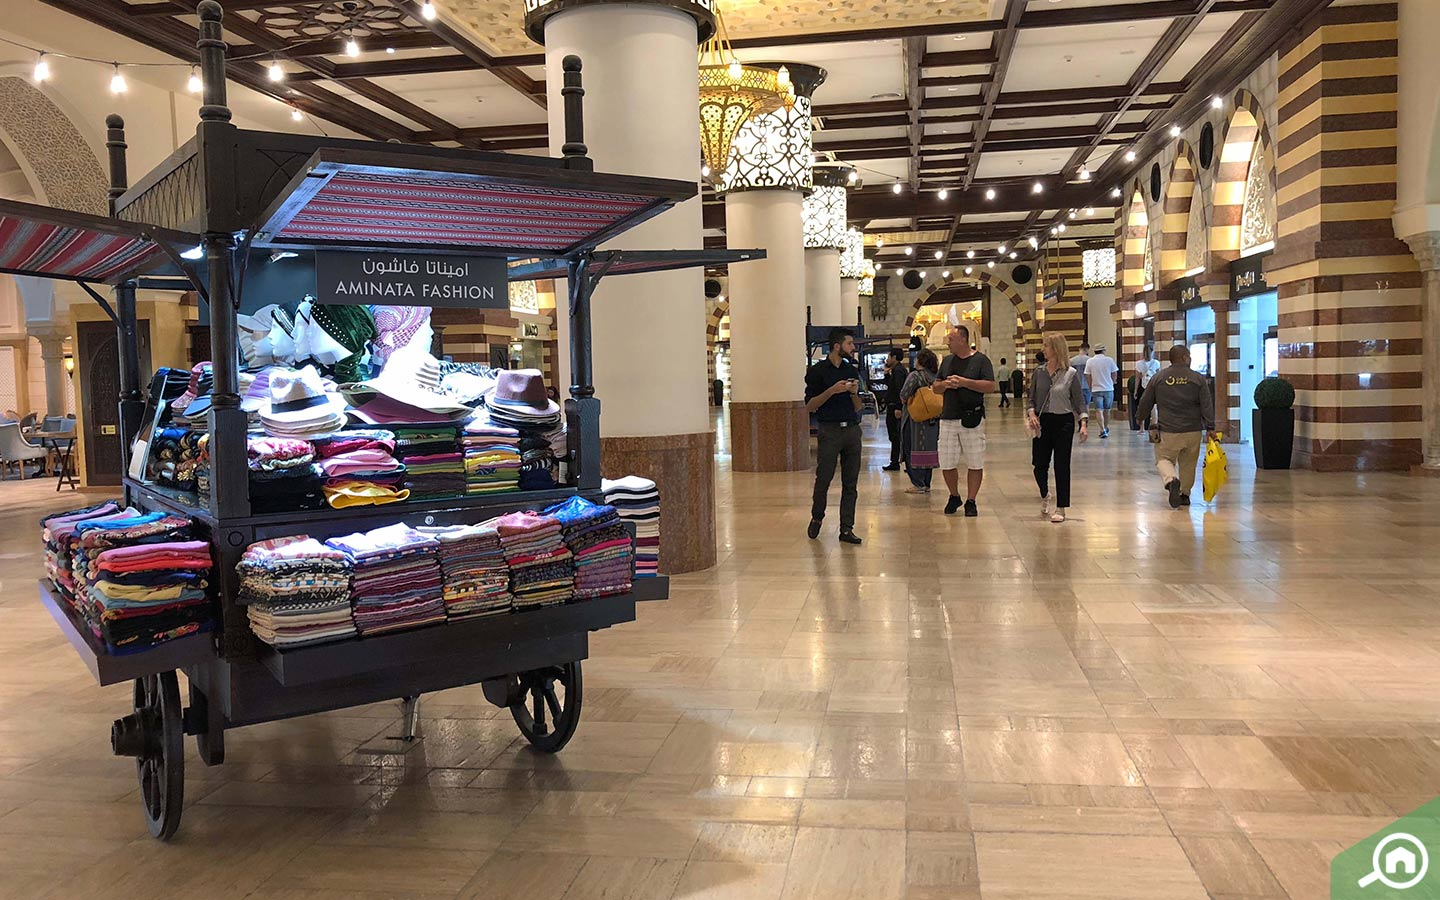 Kiosk at the souk in dubai mall